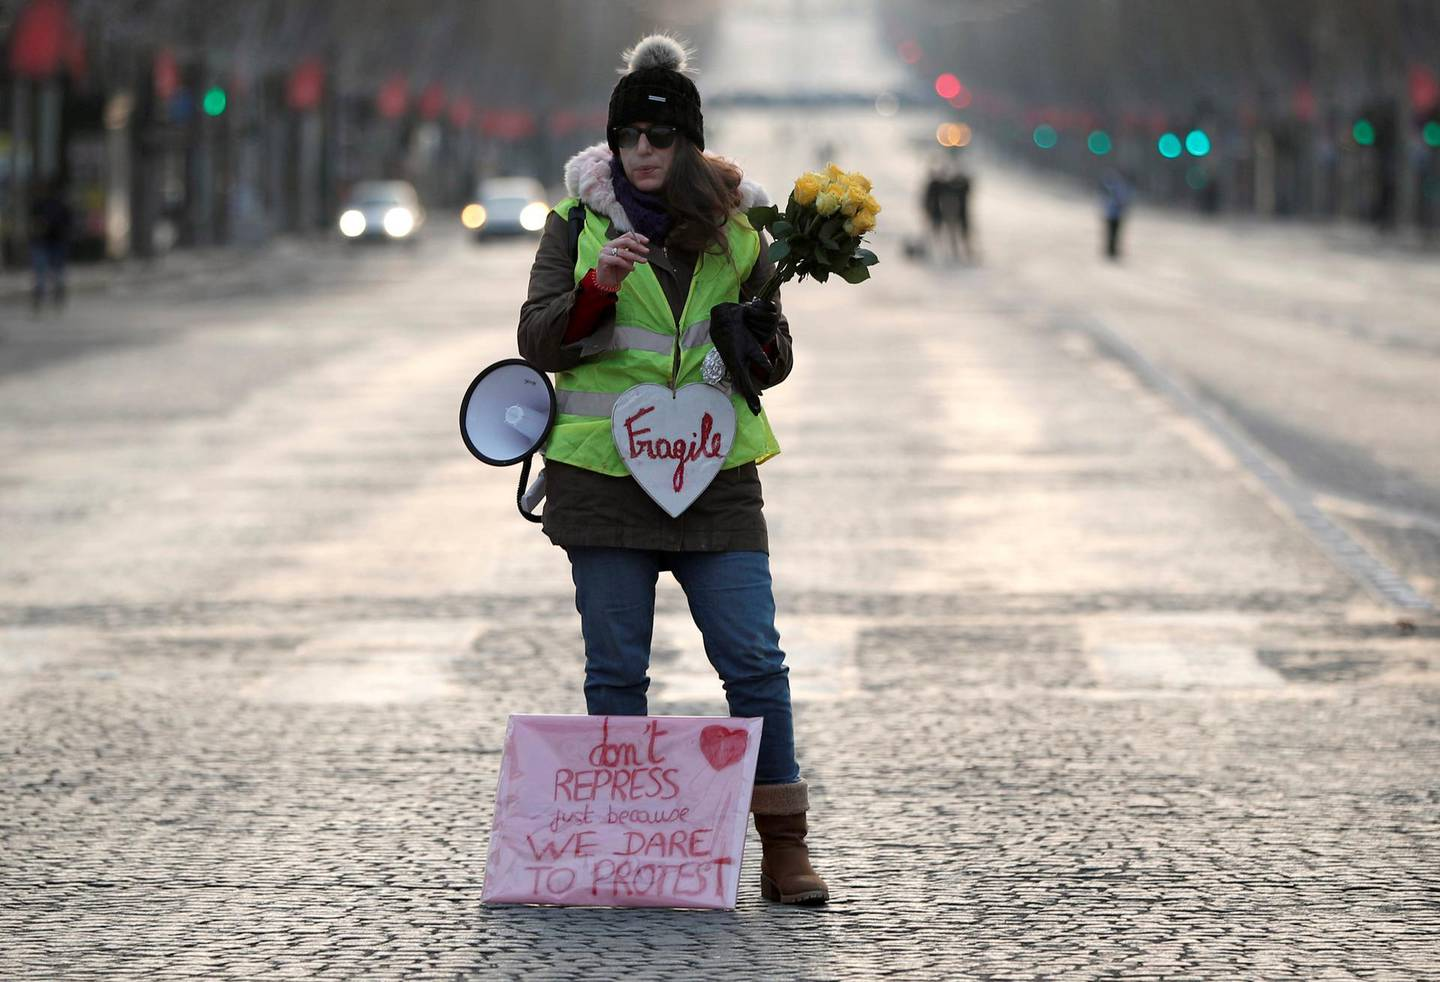 """A protester wearing a yellow vest stands before taking part in a demonstration by the """"yellow vests"""" movement on the Champs-Elysees Avenue in Paris, France, December 15, 2018. REUTERS/Benoit Tessier"""